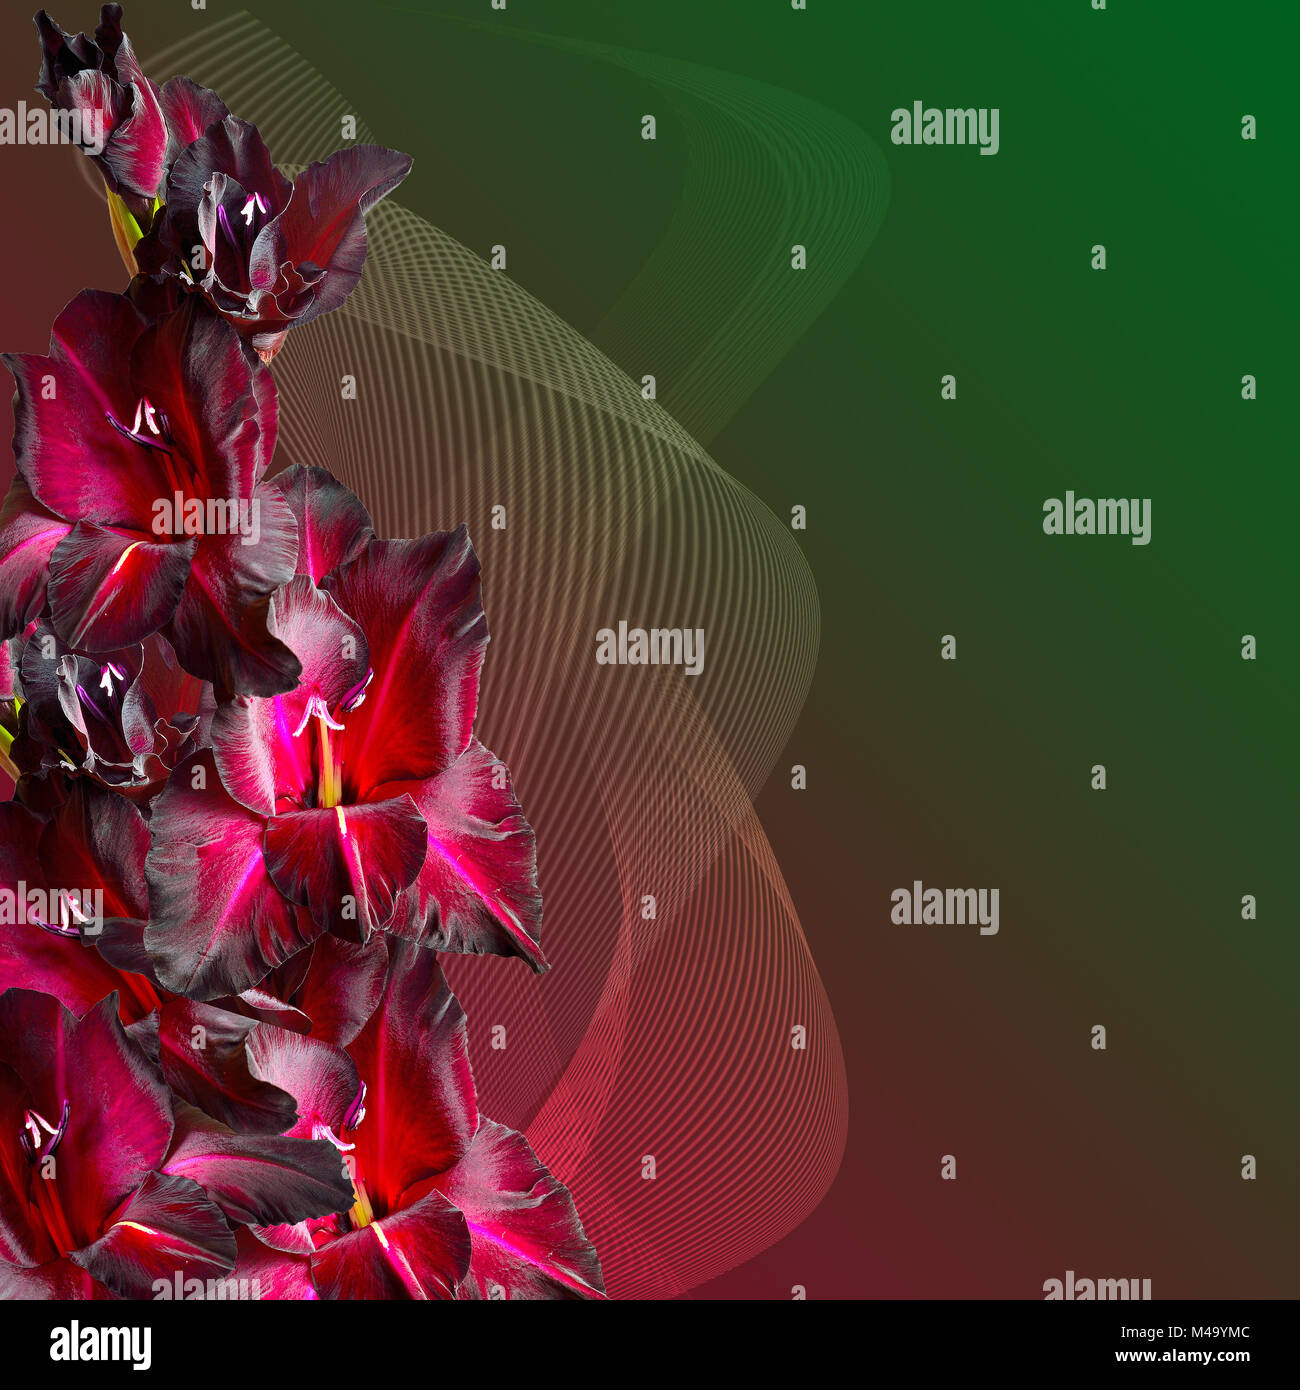 Floral border - maroon gladiolus with velvety petals - Stock Image